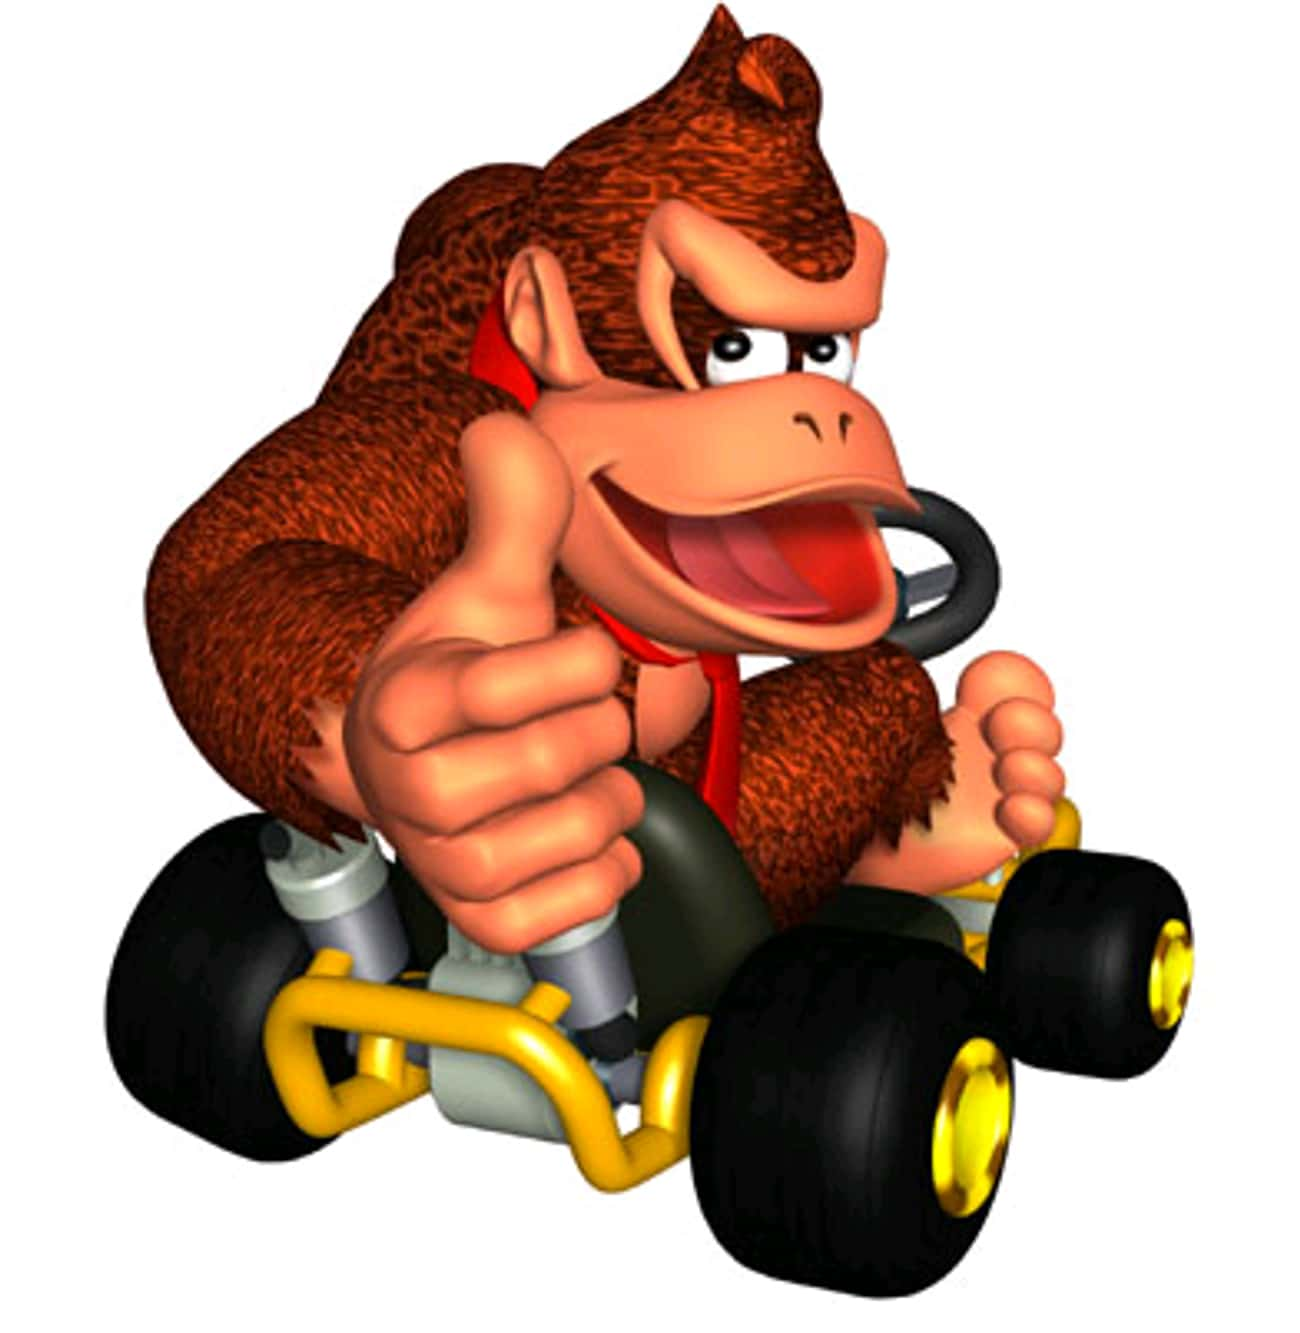 Donkey Kong is listed (or ranked) 4 on the list What Your Favorite 'Mario Kart' Character Says About You